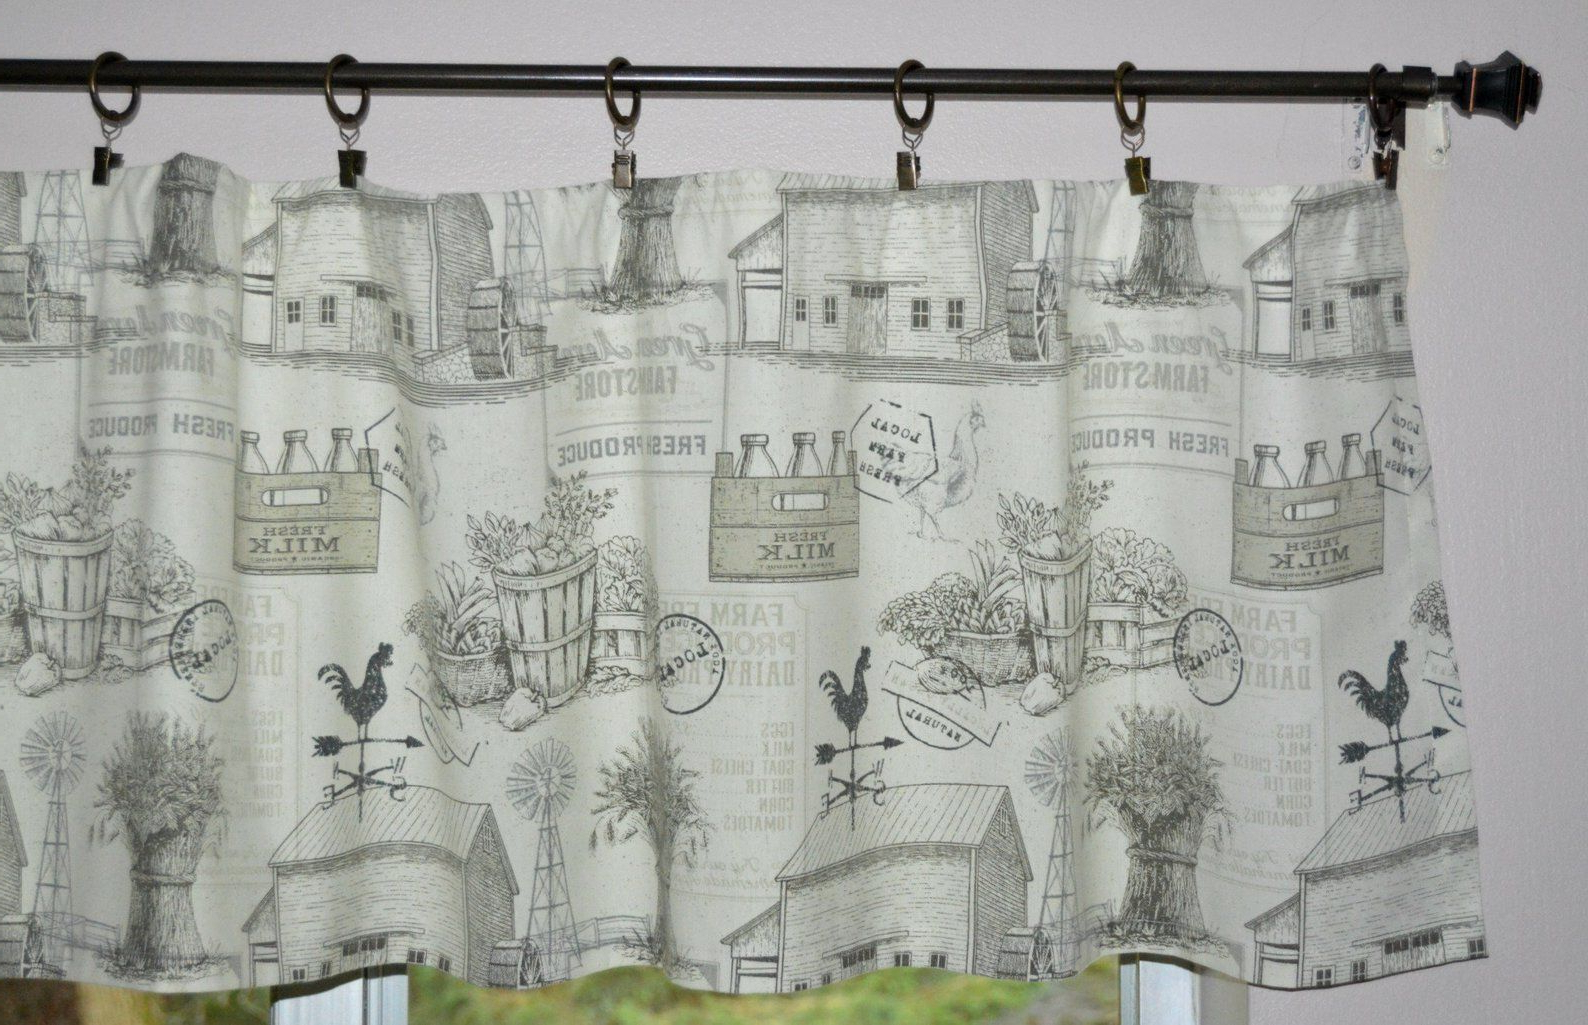 2021 Barnyard Buffalo Check Rooster Window Valances Intended For Farmhouse Valance . Farm Toile Rooster Valance (View 12 of 20)